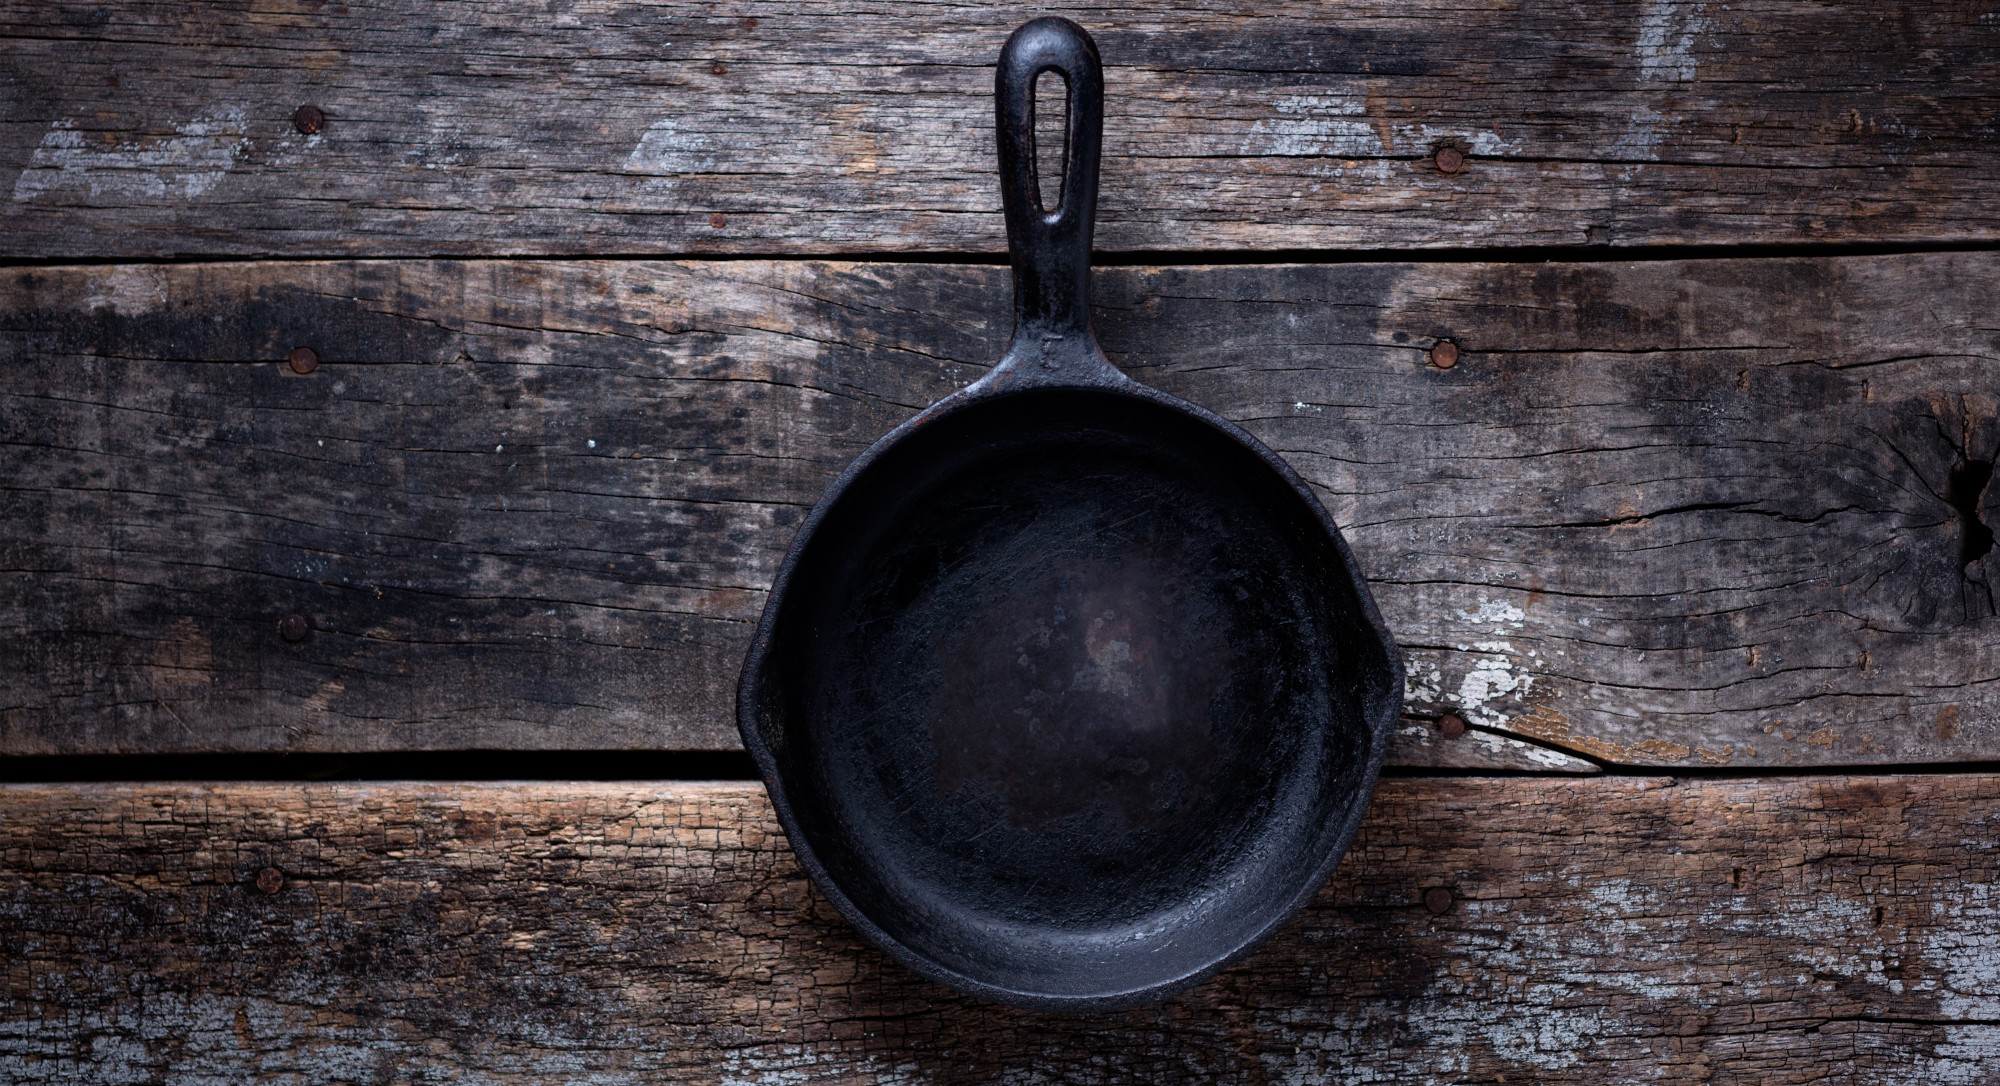 Kitchen Hack: Season and Clean Cast-Iron Pans Like a Pro